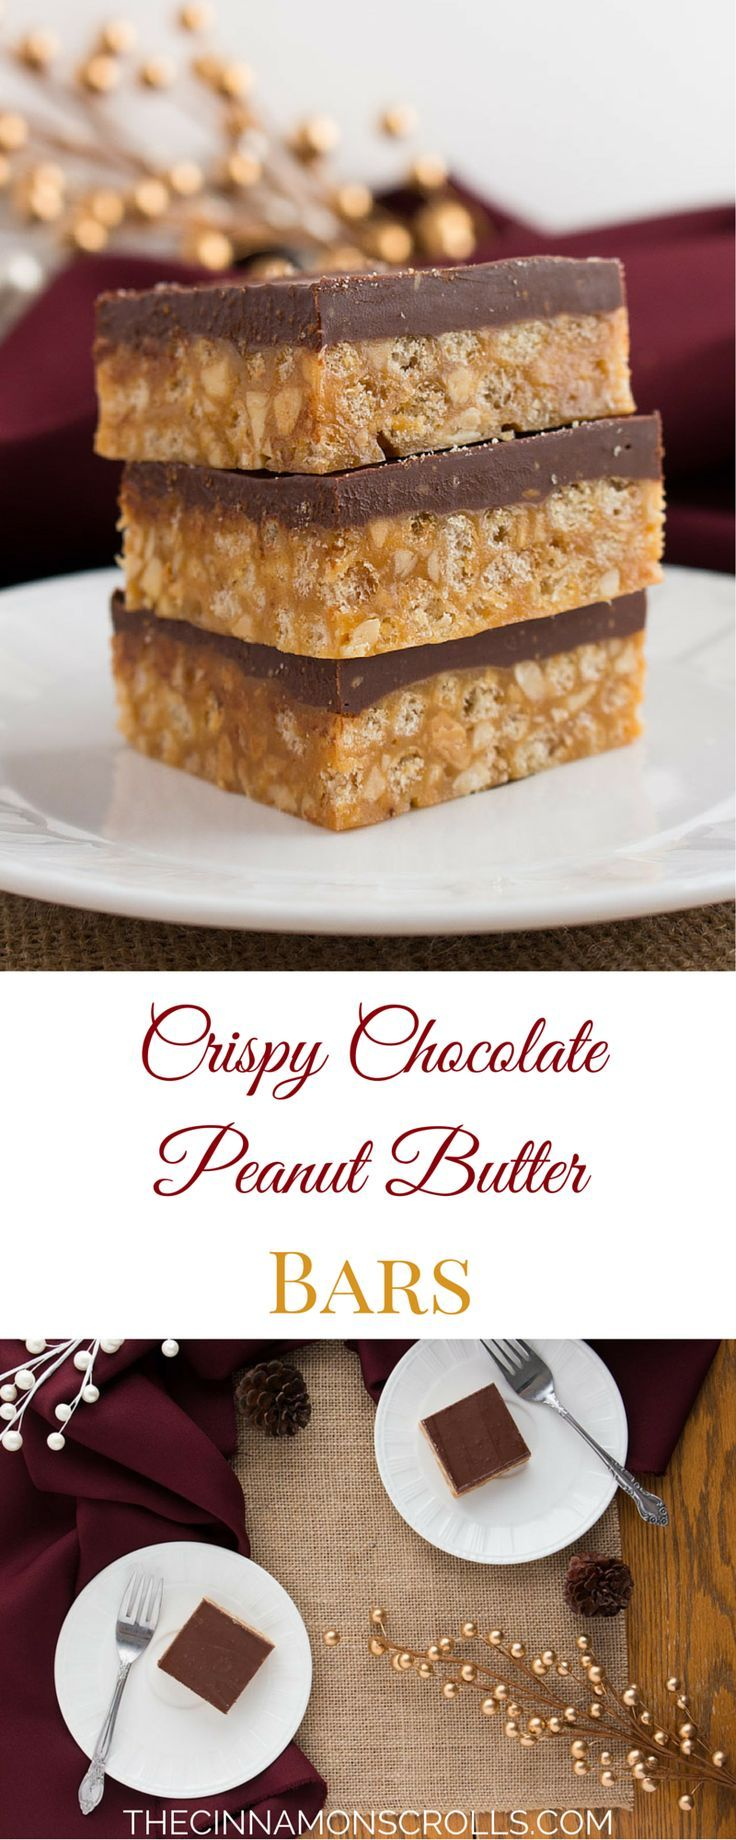 Crispy, chewy, peanut buttery, chocolatey deliciousness all wrapped up in a neat little bar! Perfect for holiday dessert trays, sharing with family and friends, and generally making your life better. These squares are my family's go-to Christmas treat!| thecinnamonscroll... @Amanda | The Cinnamon Scrolls